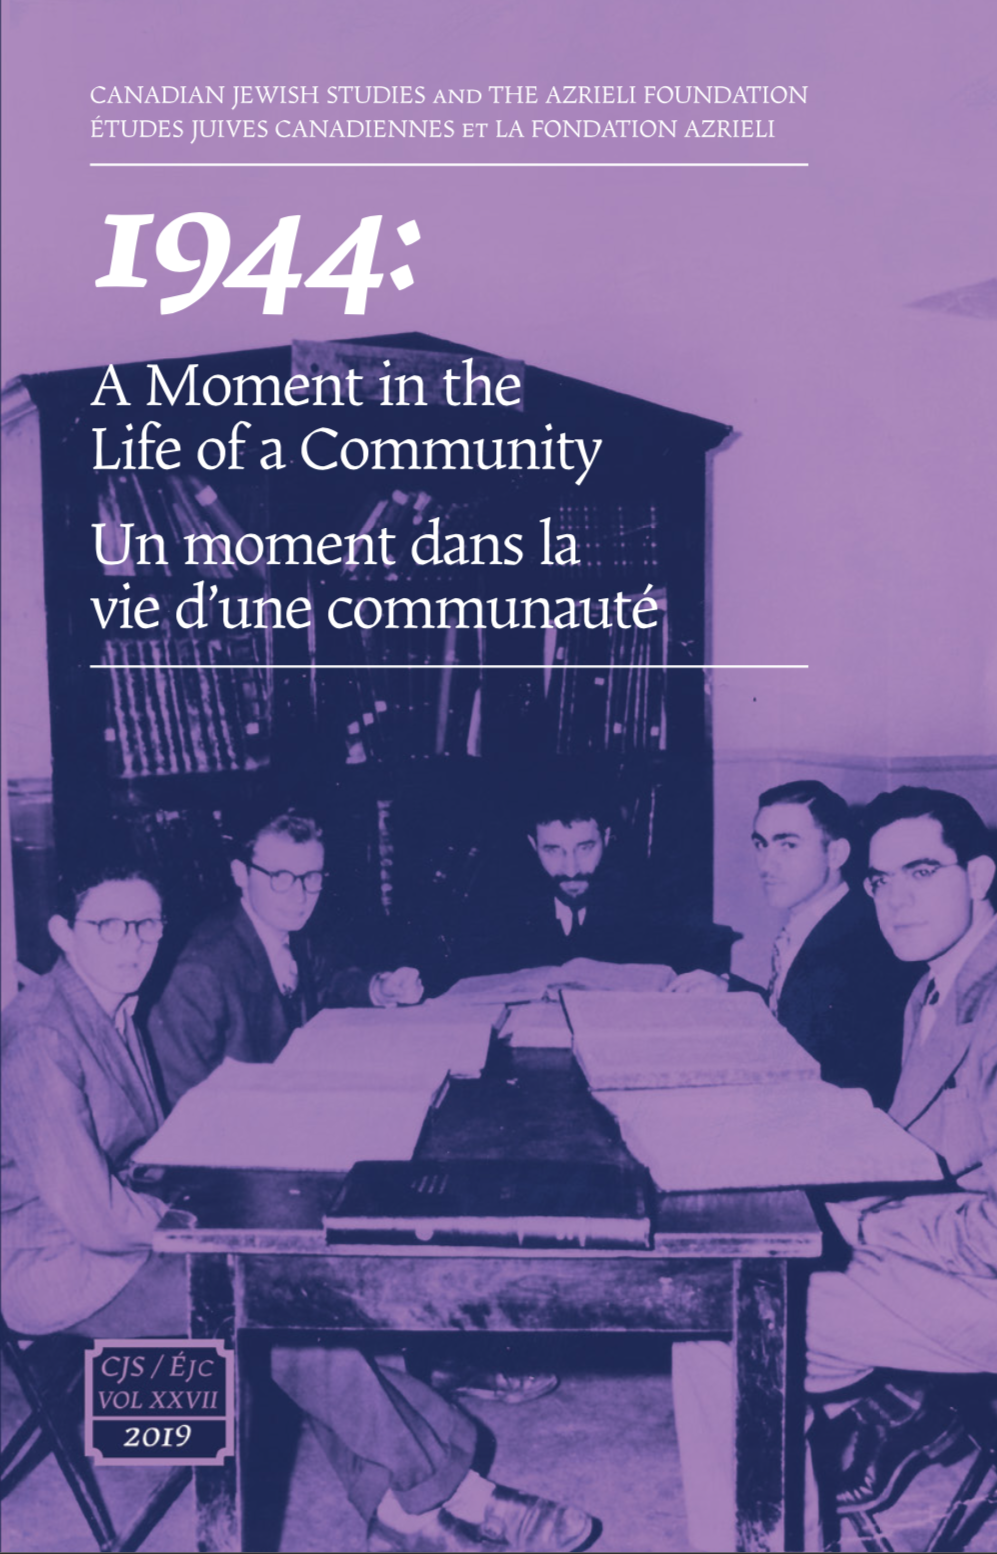 Canadian Jewish Studies Volume 27, 2019, Front cover photograph / photographie de la page couverture: Rabbi Hirschprung (centre) learning Talmud with a group of men. Clockwise from left to right: Rabbi Moshe Werner of the Chevra Tehillim synagogue; Tzudyk Mandelcorn, a community leader and beloved student of Rabbi Hirschprung's; Rabbi Hirschprung; Rabbi Shlomo Spiro of the Young Israel of Chomedey synagogue; and Rabbi Nachum Rabinovitch, who became dean of Jews' College (now known as the London School of Jewish Studies) in London, England, and is currently rosh yeshiva and dean of the hesder yeshiva in Maalei Adumim, Israel. Montreal, 1940s. Courtesy of The Azrieli Foundation. Le Rabbin Hirschprung (au centre) qui étudie le Talmud avec un groupe d'hommes. De gauche à droite: Le Rabbin Moshe Werner de la Synagogue Chevra Tehilim; Tzudyk Mandelcorn, leader communautaire et étudiant bien-aimé du Rabbin Hirschprung; Au centre, le Rabbin Hirschprung; le Rabbin Shlomo Spiro de la synagogue Young Israel de Chomedey; finalement, le Rabbin Nachum Rabinovitch, devenu doyen du Jews' College à Londres, en Angleterre (aujourd'hui le London School of Jewish Studies). Il occupe présentement le poste de Rosh Yeshiva et de Doyen du Hesder Yeshiva à Maale Adumim, en Israel. Montréal, années 1940. La Fondation Azrieli.